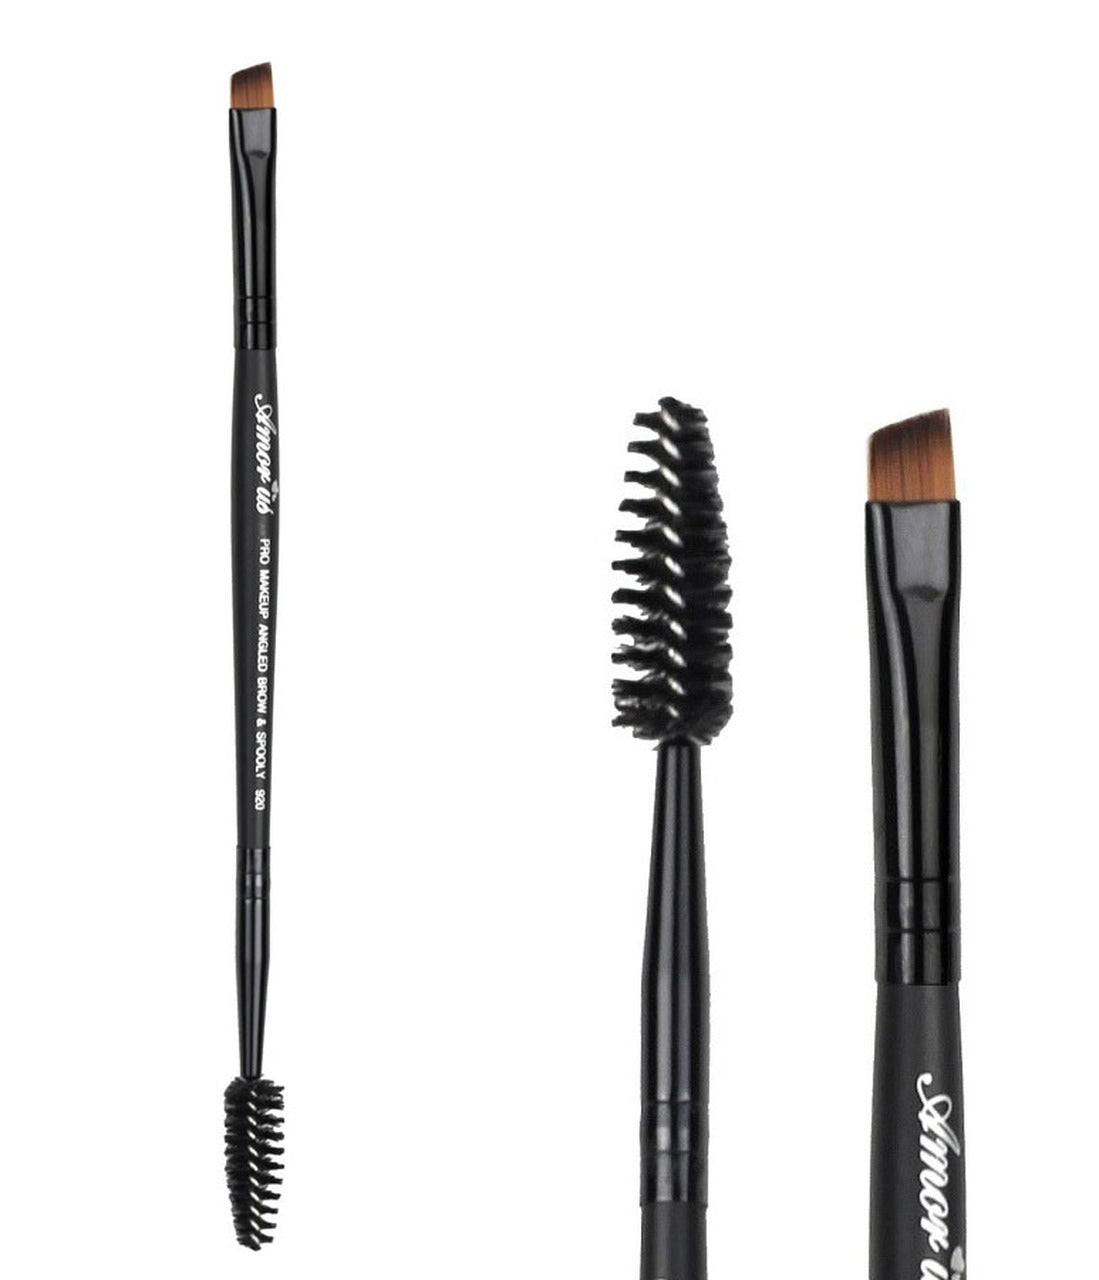 AM-BR920 : Professional Deluxe Duo Brow & Liner Brush 1 DZ